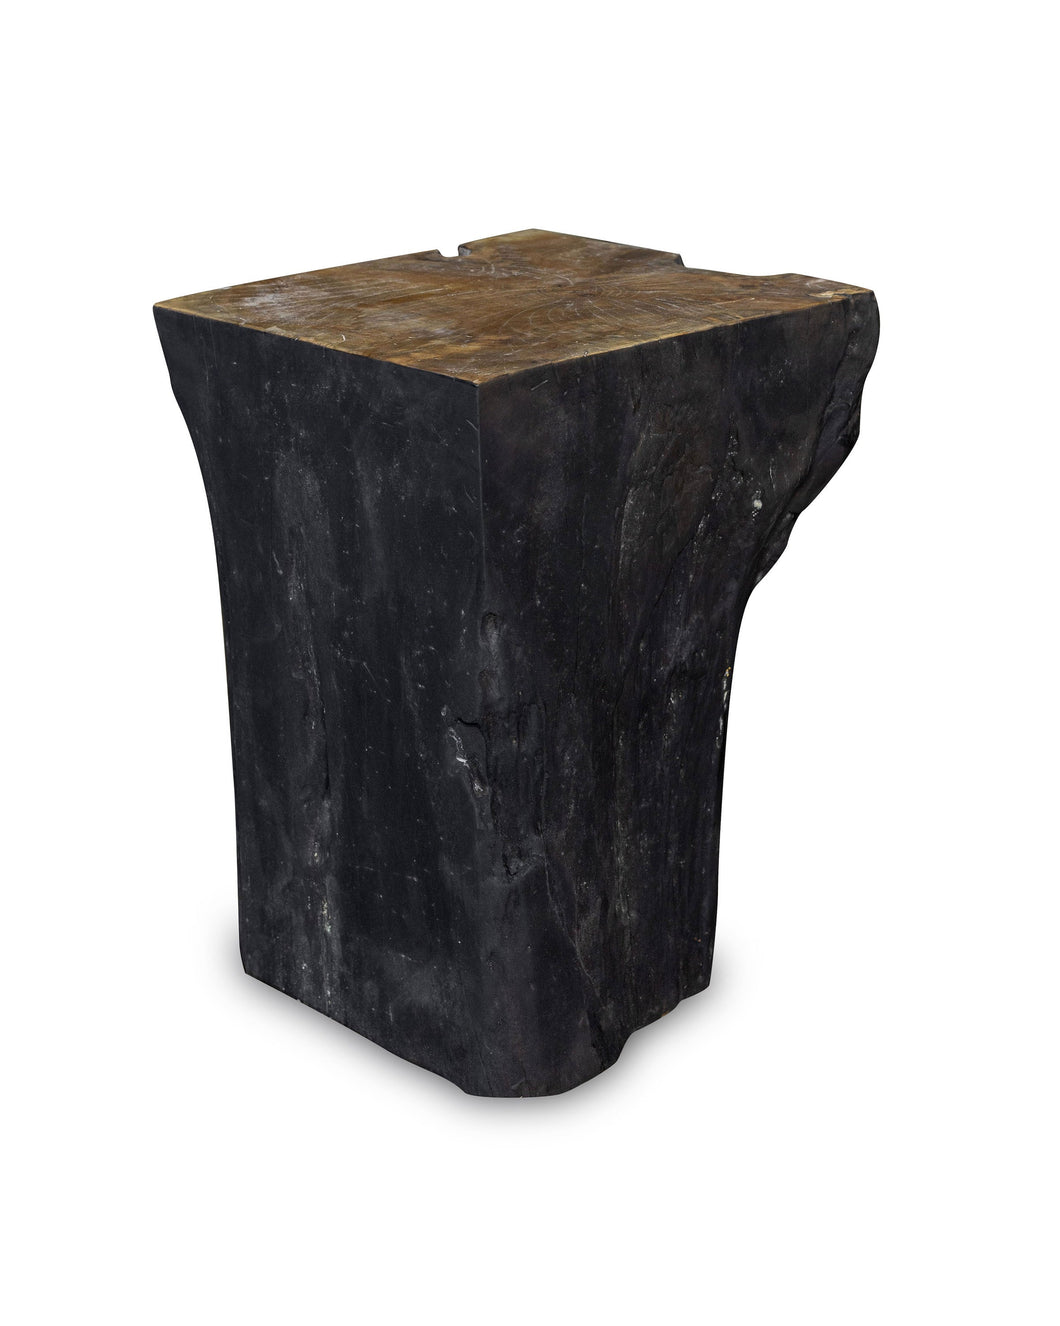 Square Solid Teak Wood Side Table, Natural Black Tree Stump Stool or End Table #8  16.25